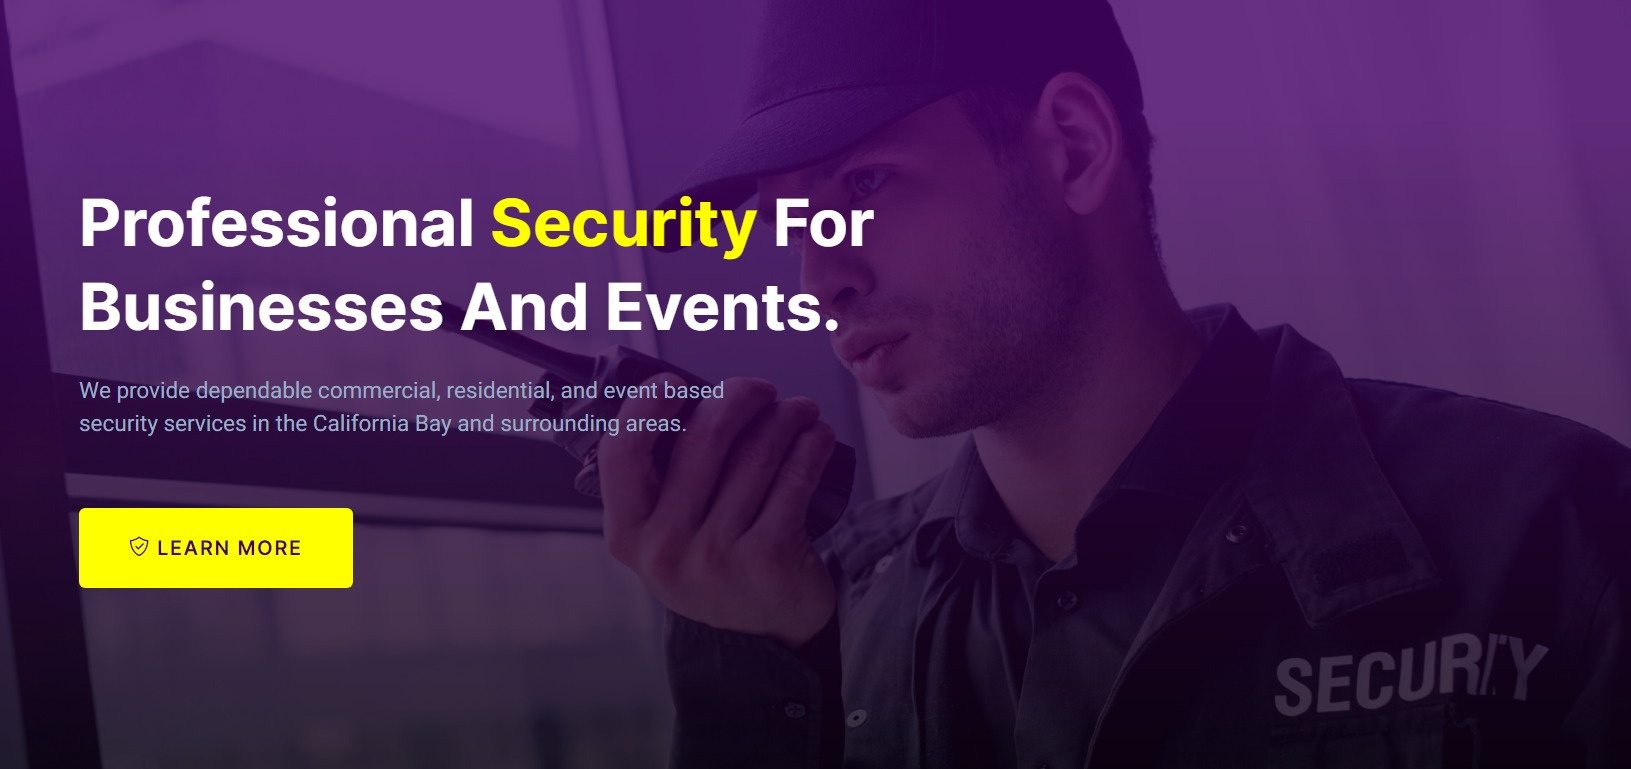 Five Star Security & Event Staffing - Oakland CA on Echelon Local   Providing dependable commercial security, residential security, private security, and event based security services in the California Bay and surrounding areas.